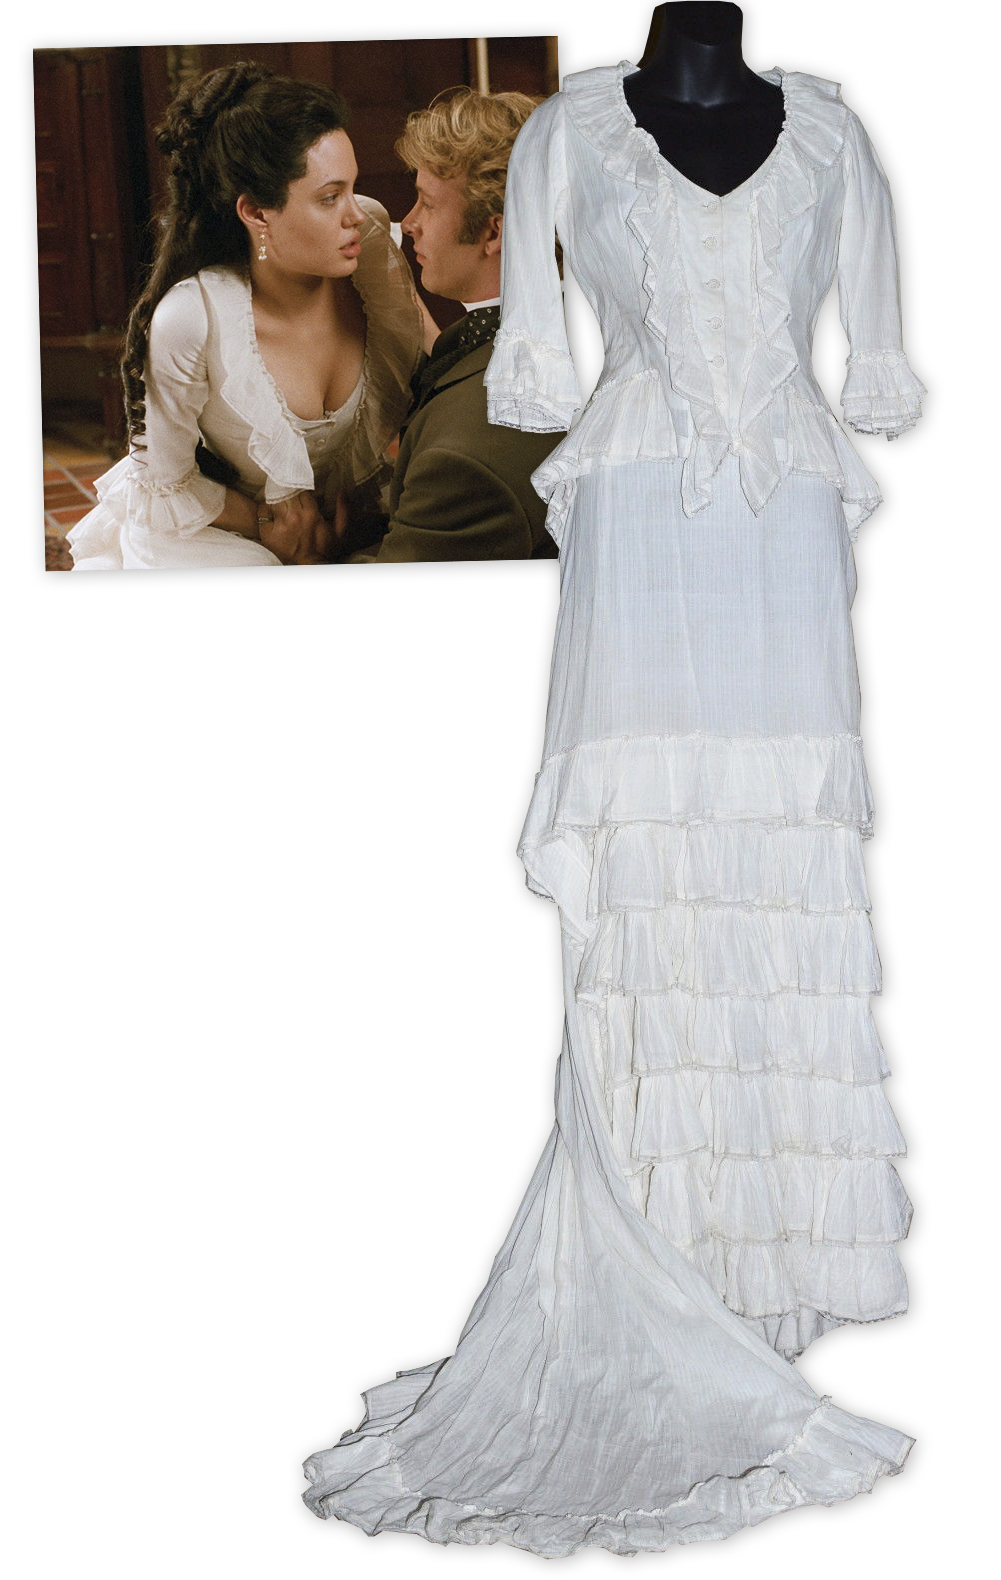 Angelina Jolie Original Sin lot detail - angelina jolie screen-worn costume from